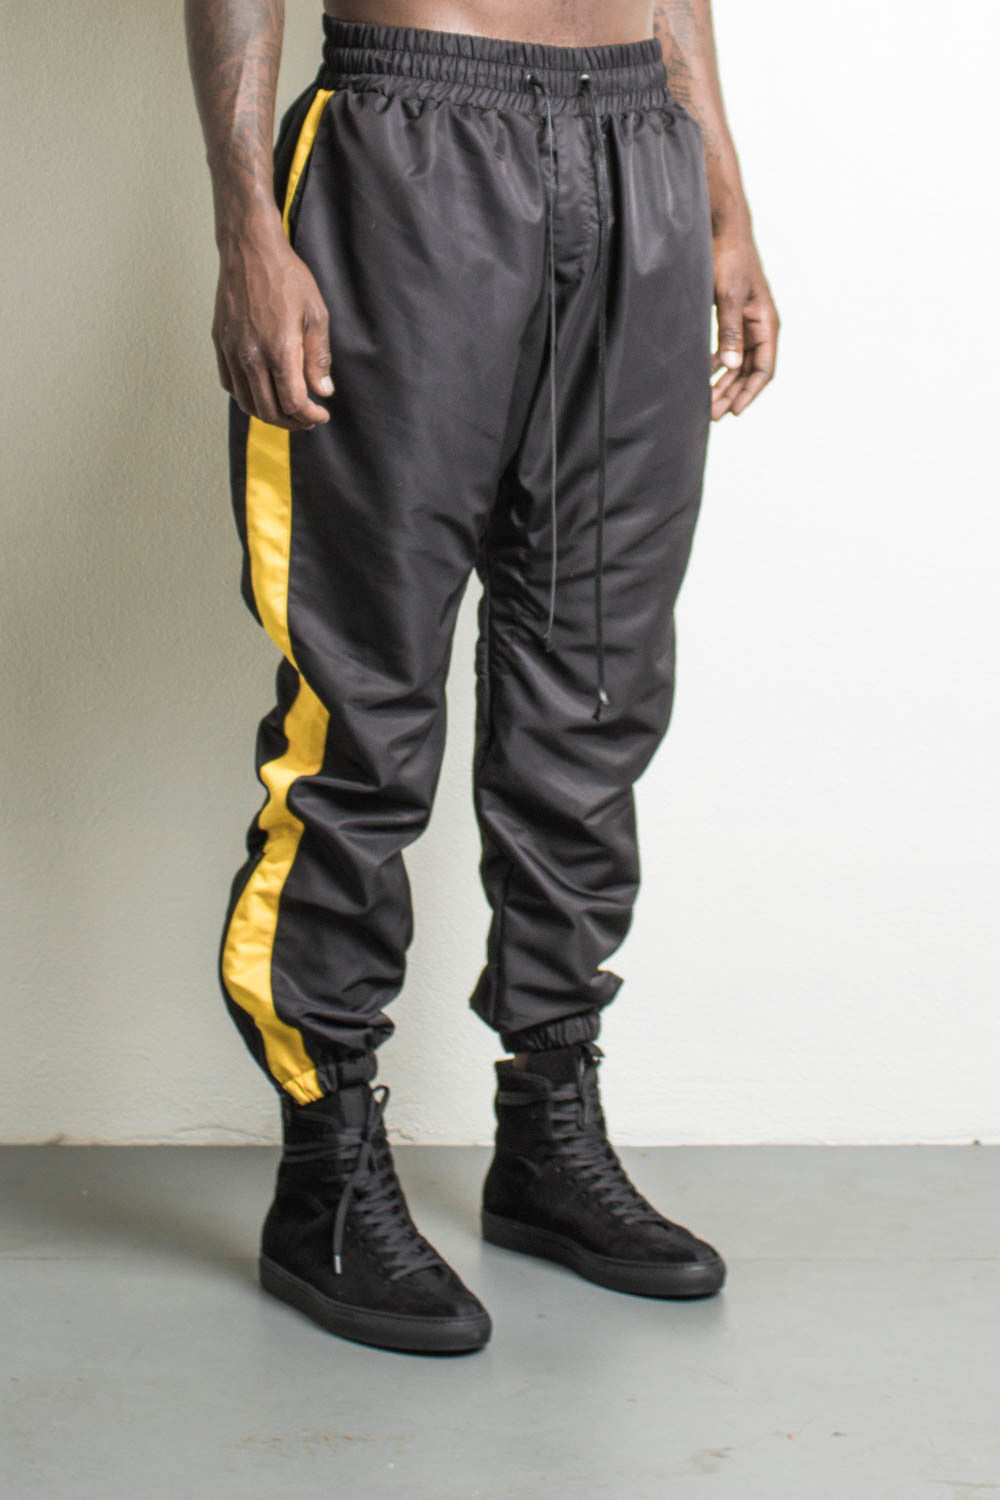 % polyester microfiber parachute track pants lining: nylon mesh dp tape detail rear pocket natural waxed drawcord 10